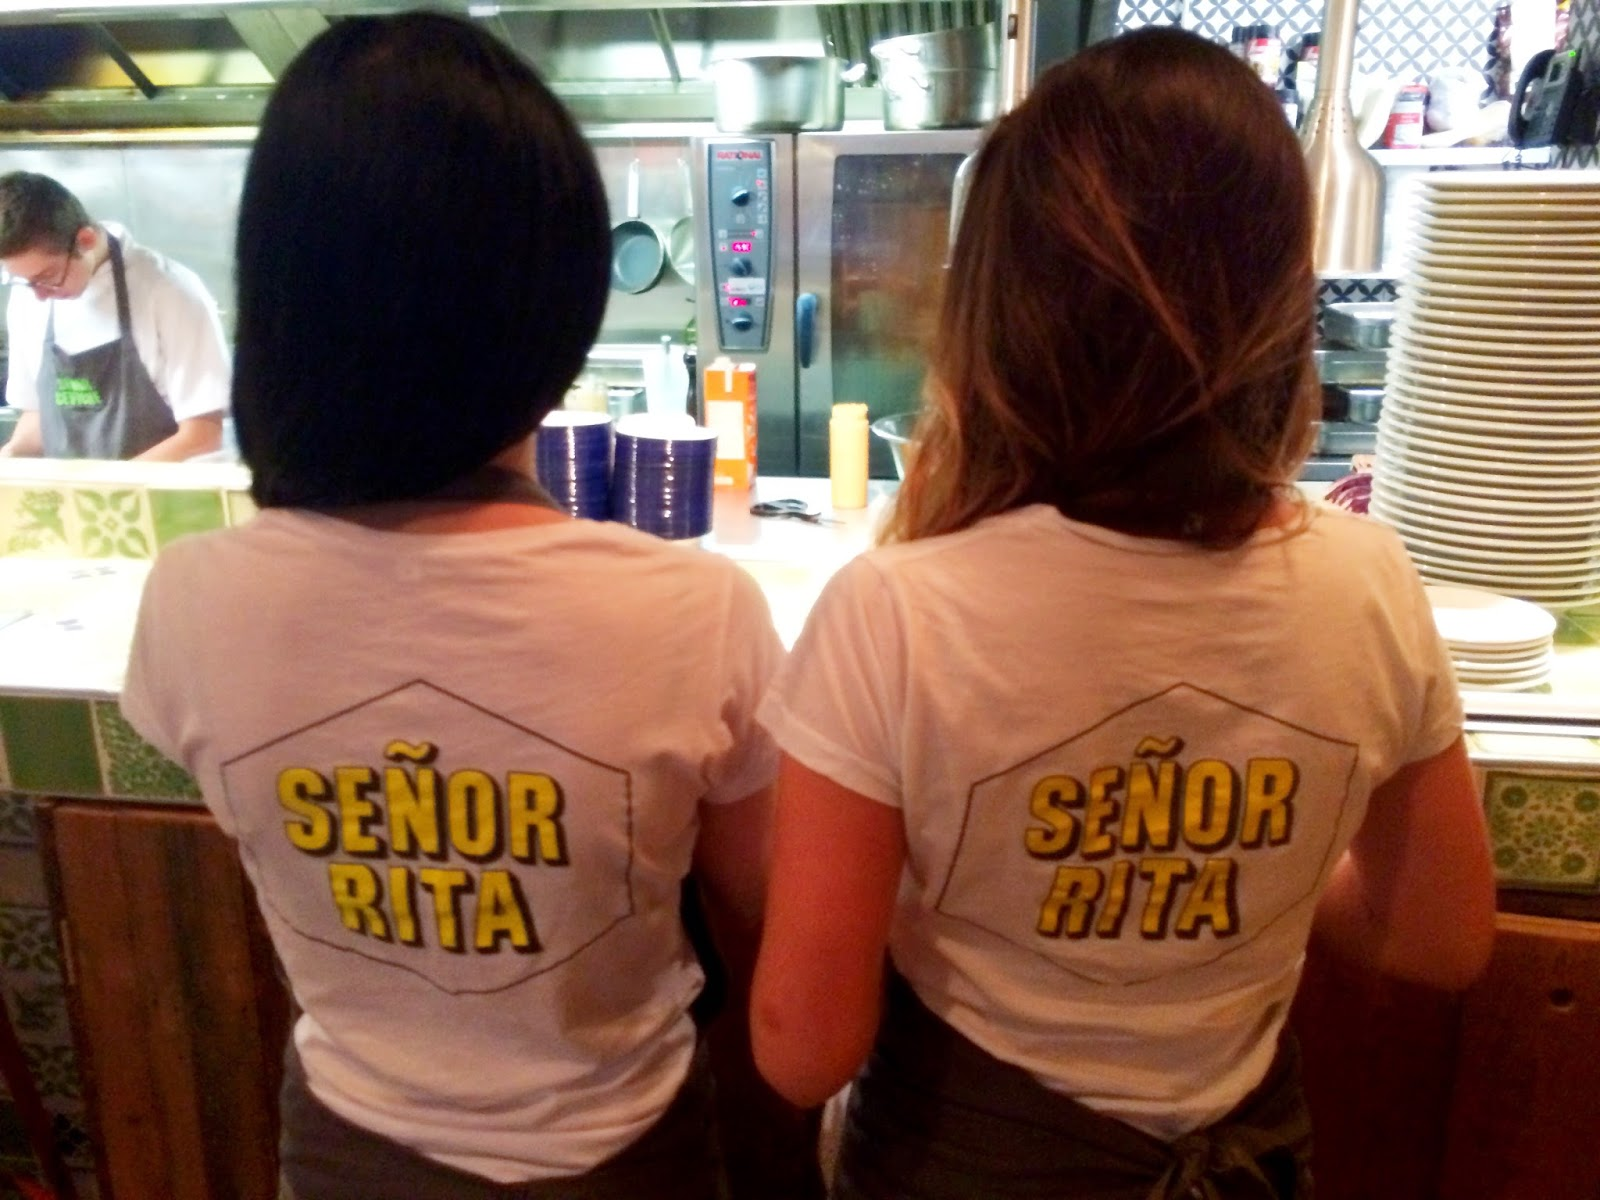 The senor ritas at Senor Ceviche - Kingly Court, Soho, London